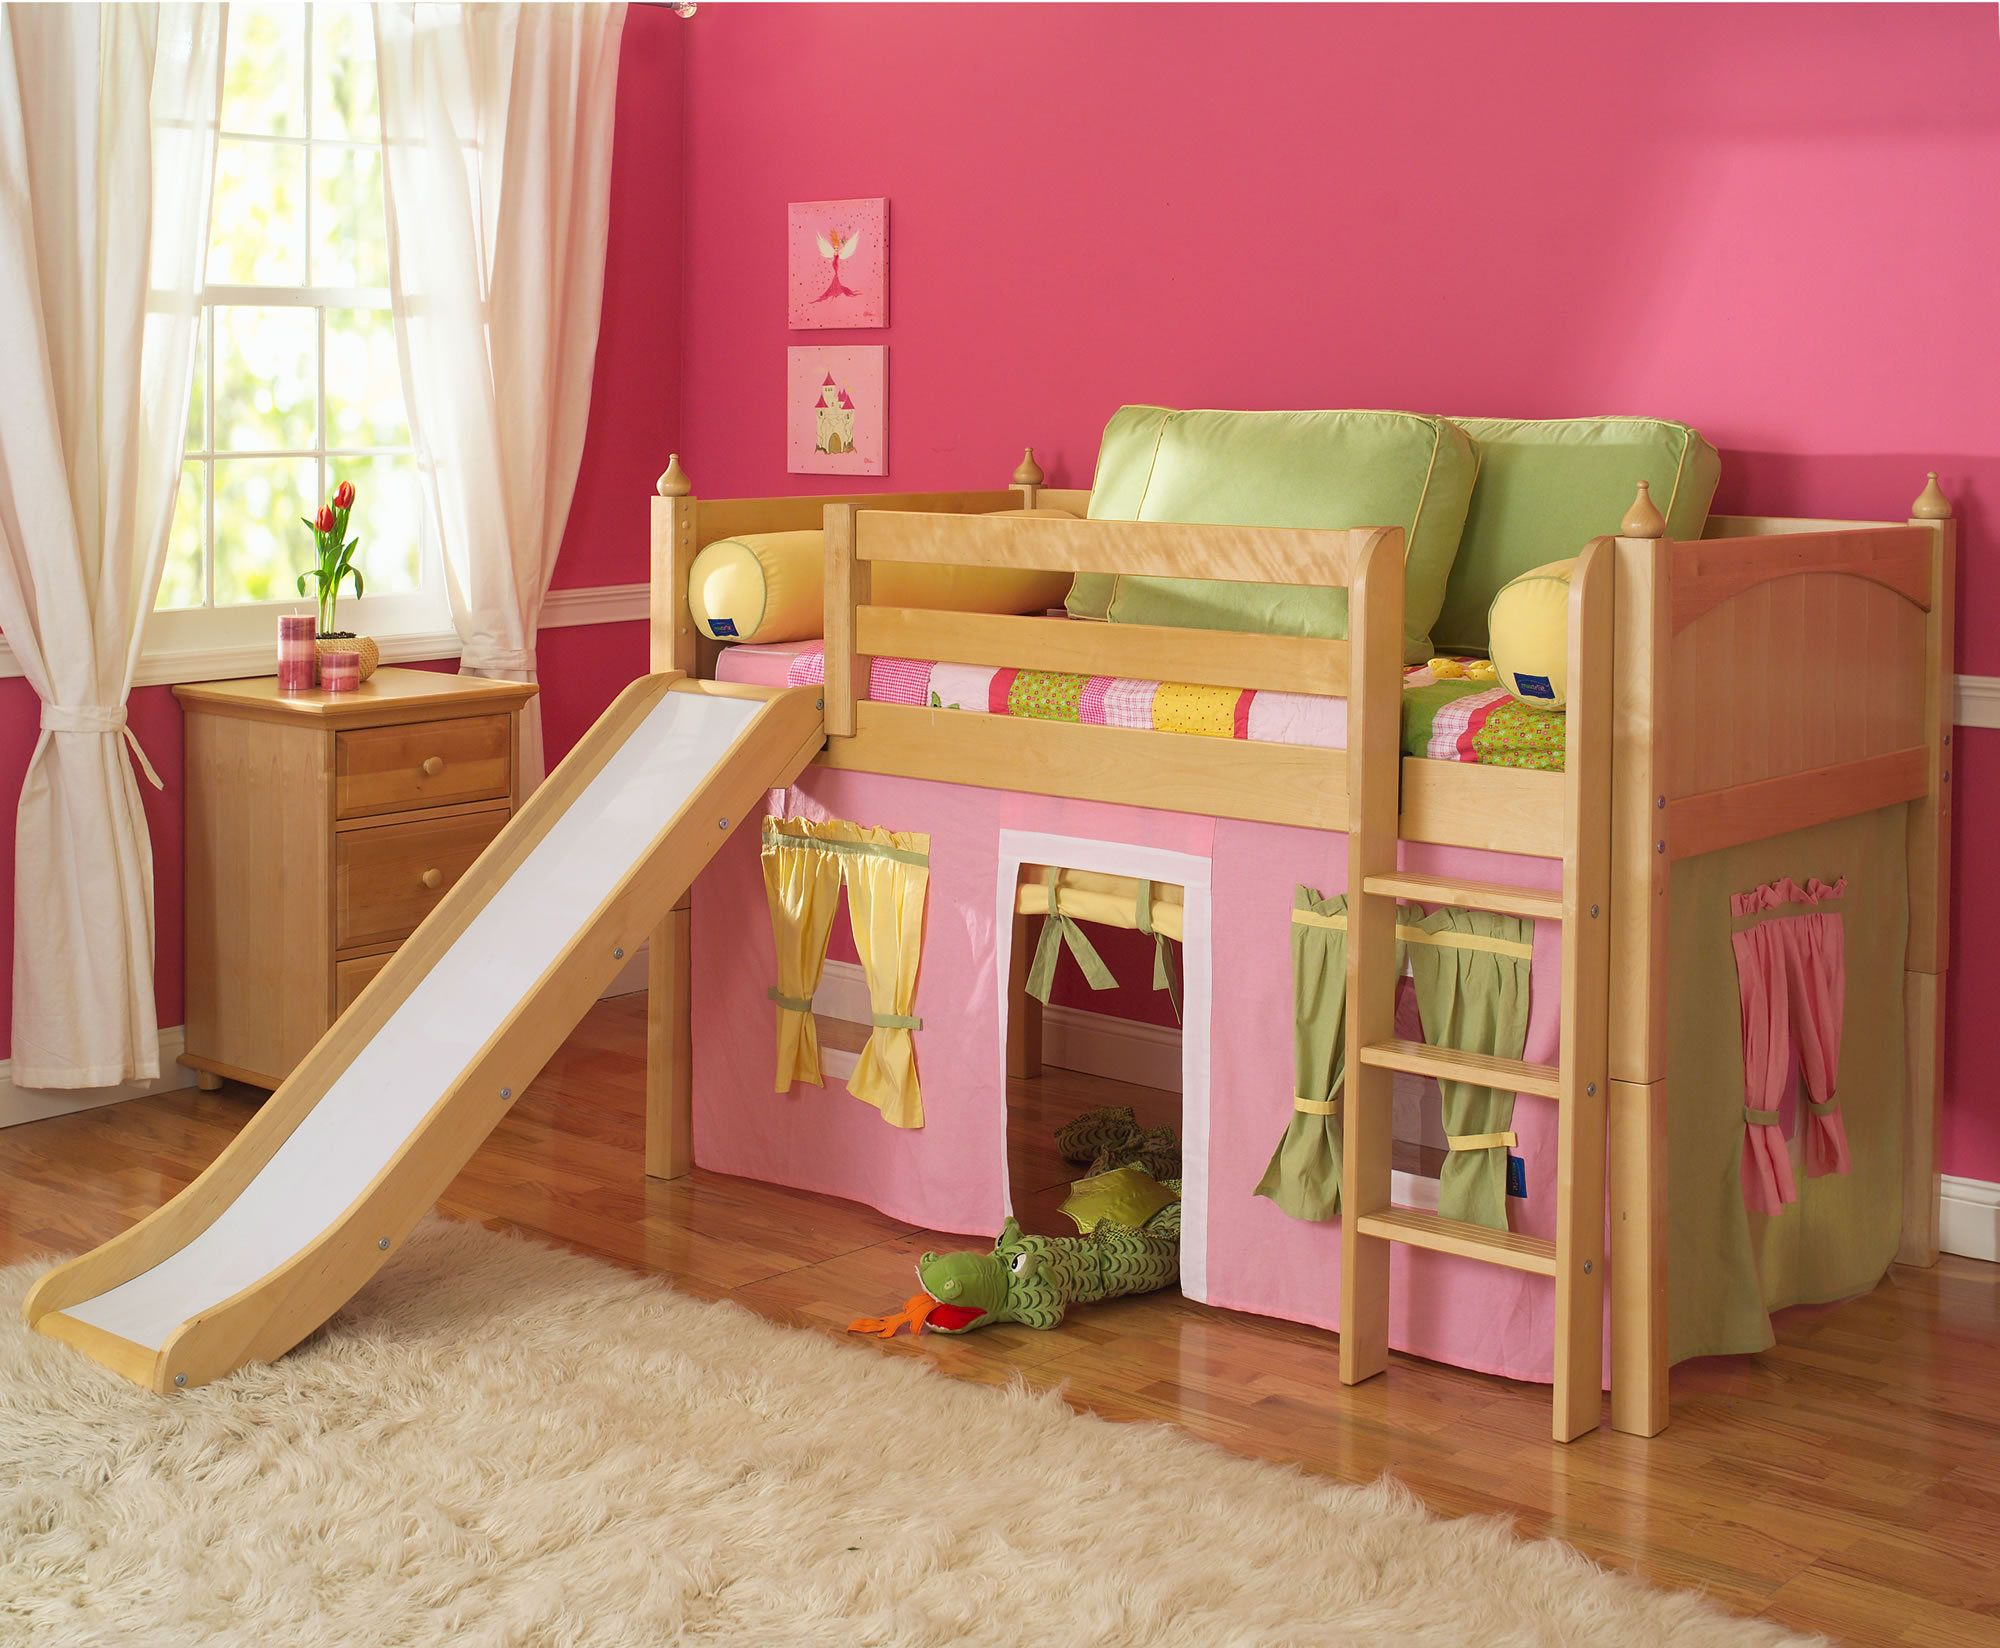 Wooden loft bed with slide  Bed and playhouse in one  Bedroom ideas  Pinterest  Playhouses